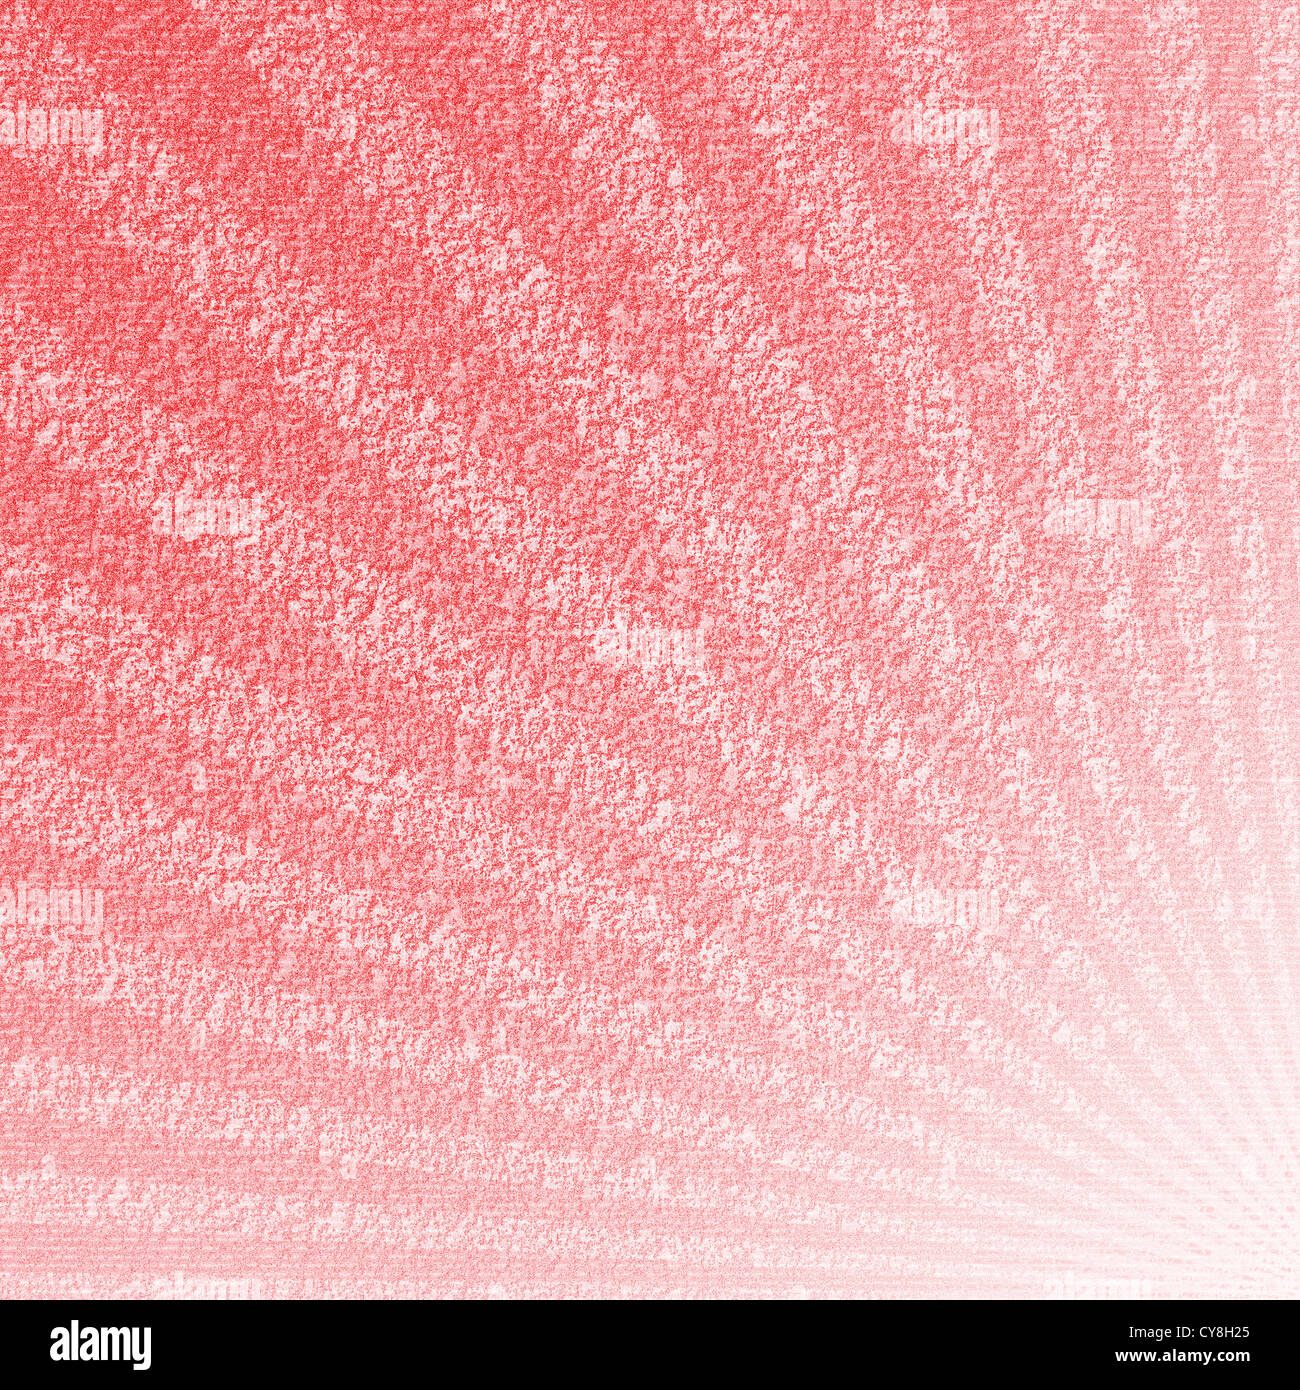 red and white christmas background. stock photo red and white texture christmas background with delicate abstract pattern oblique rays